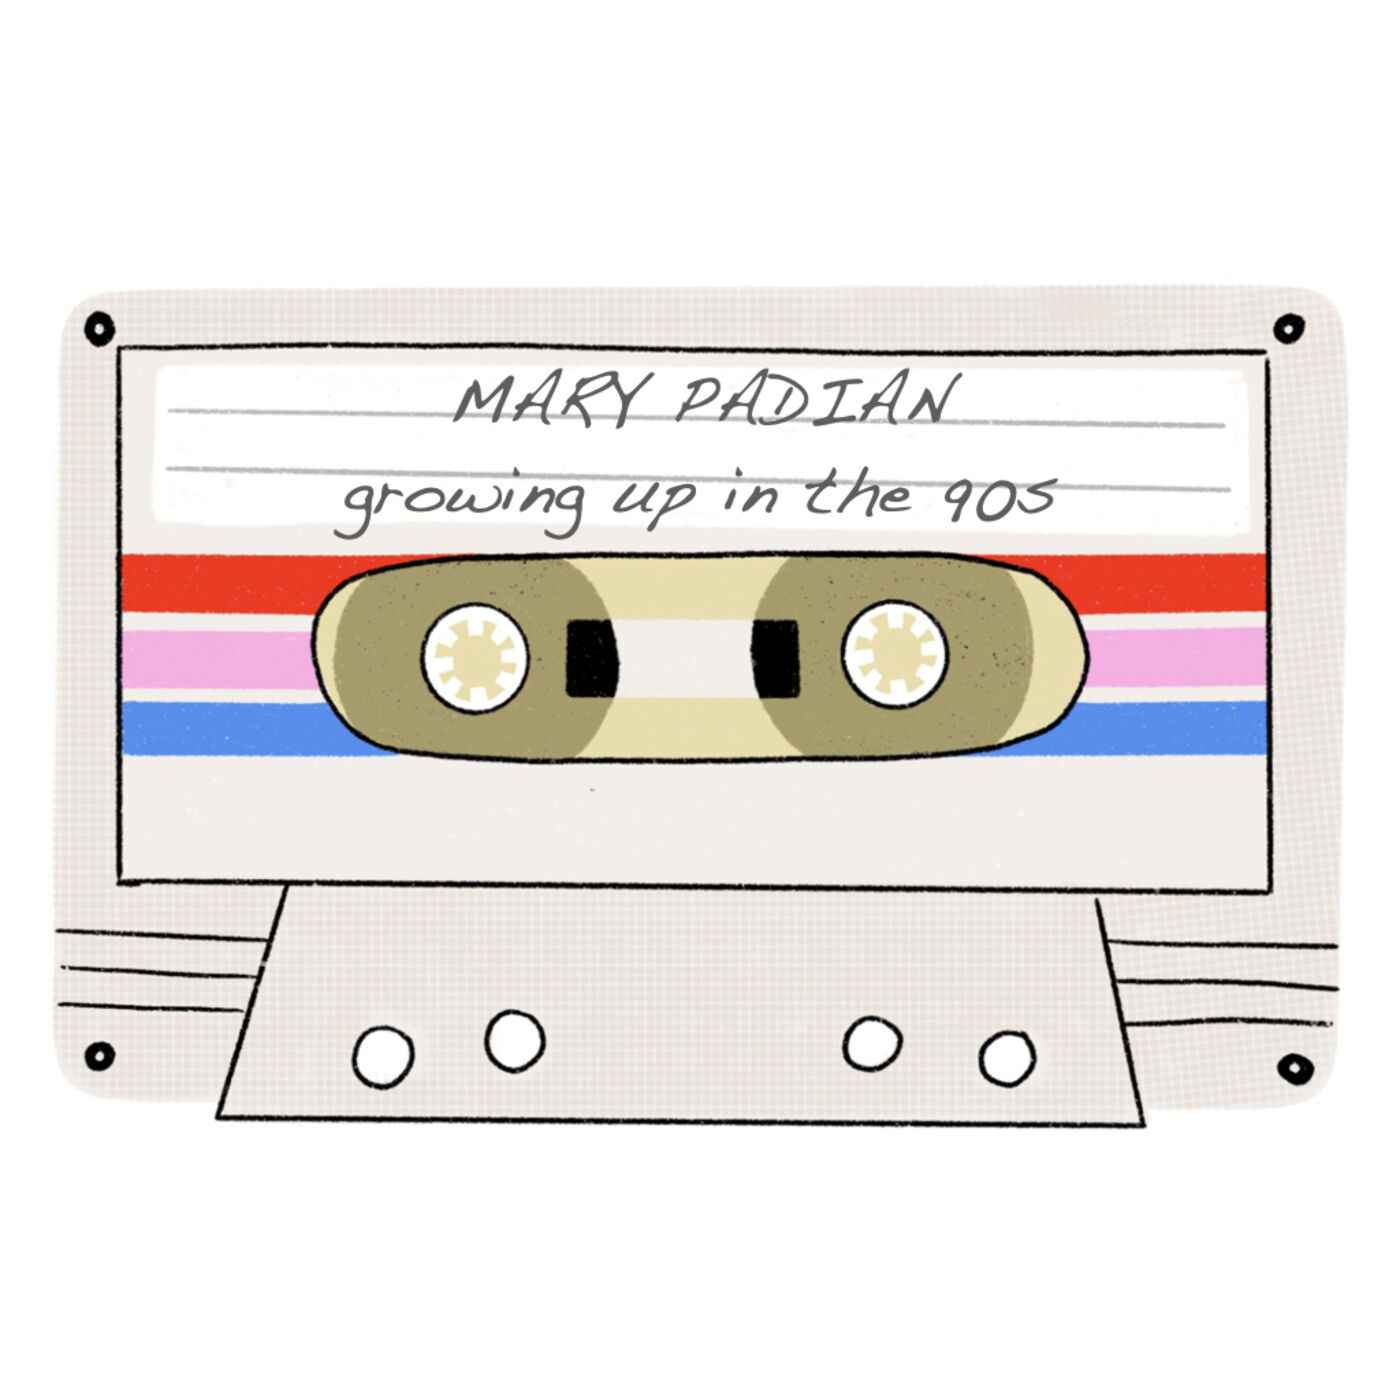 Mix Tape #3 - 80s/90s Hits by Mary Padian